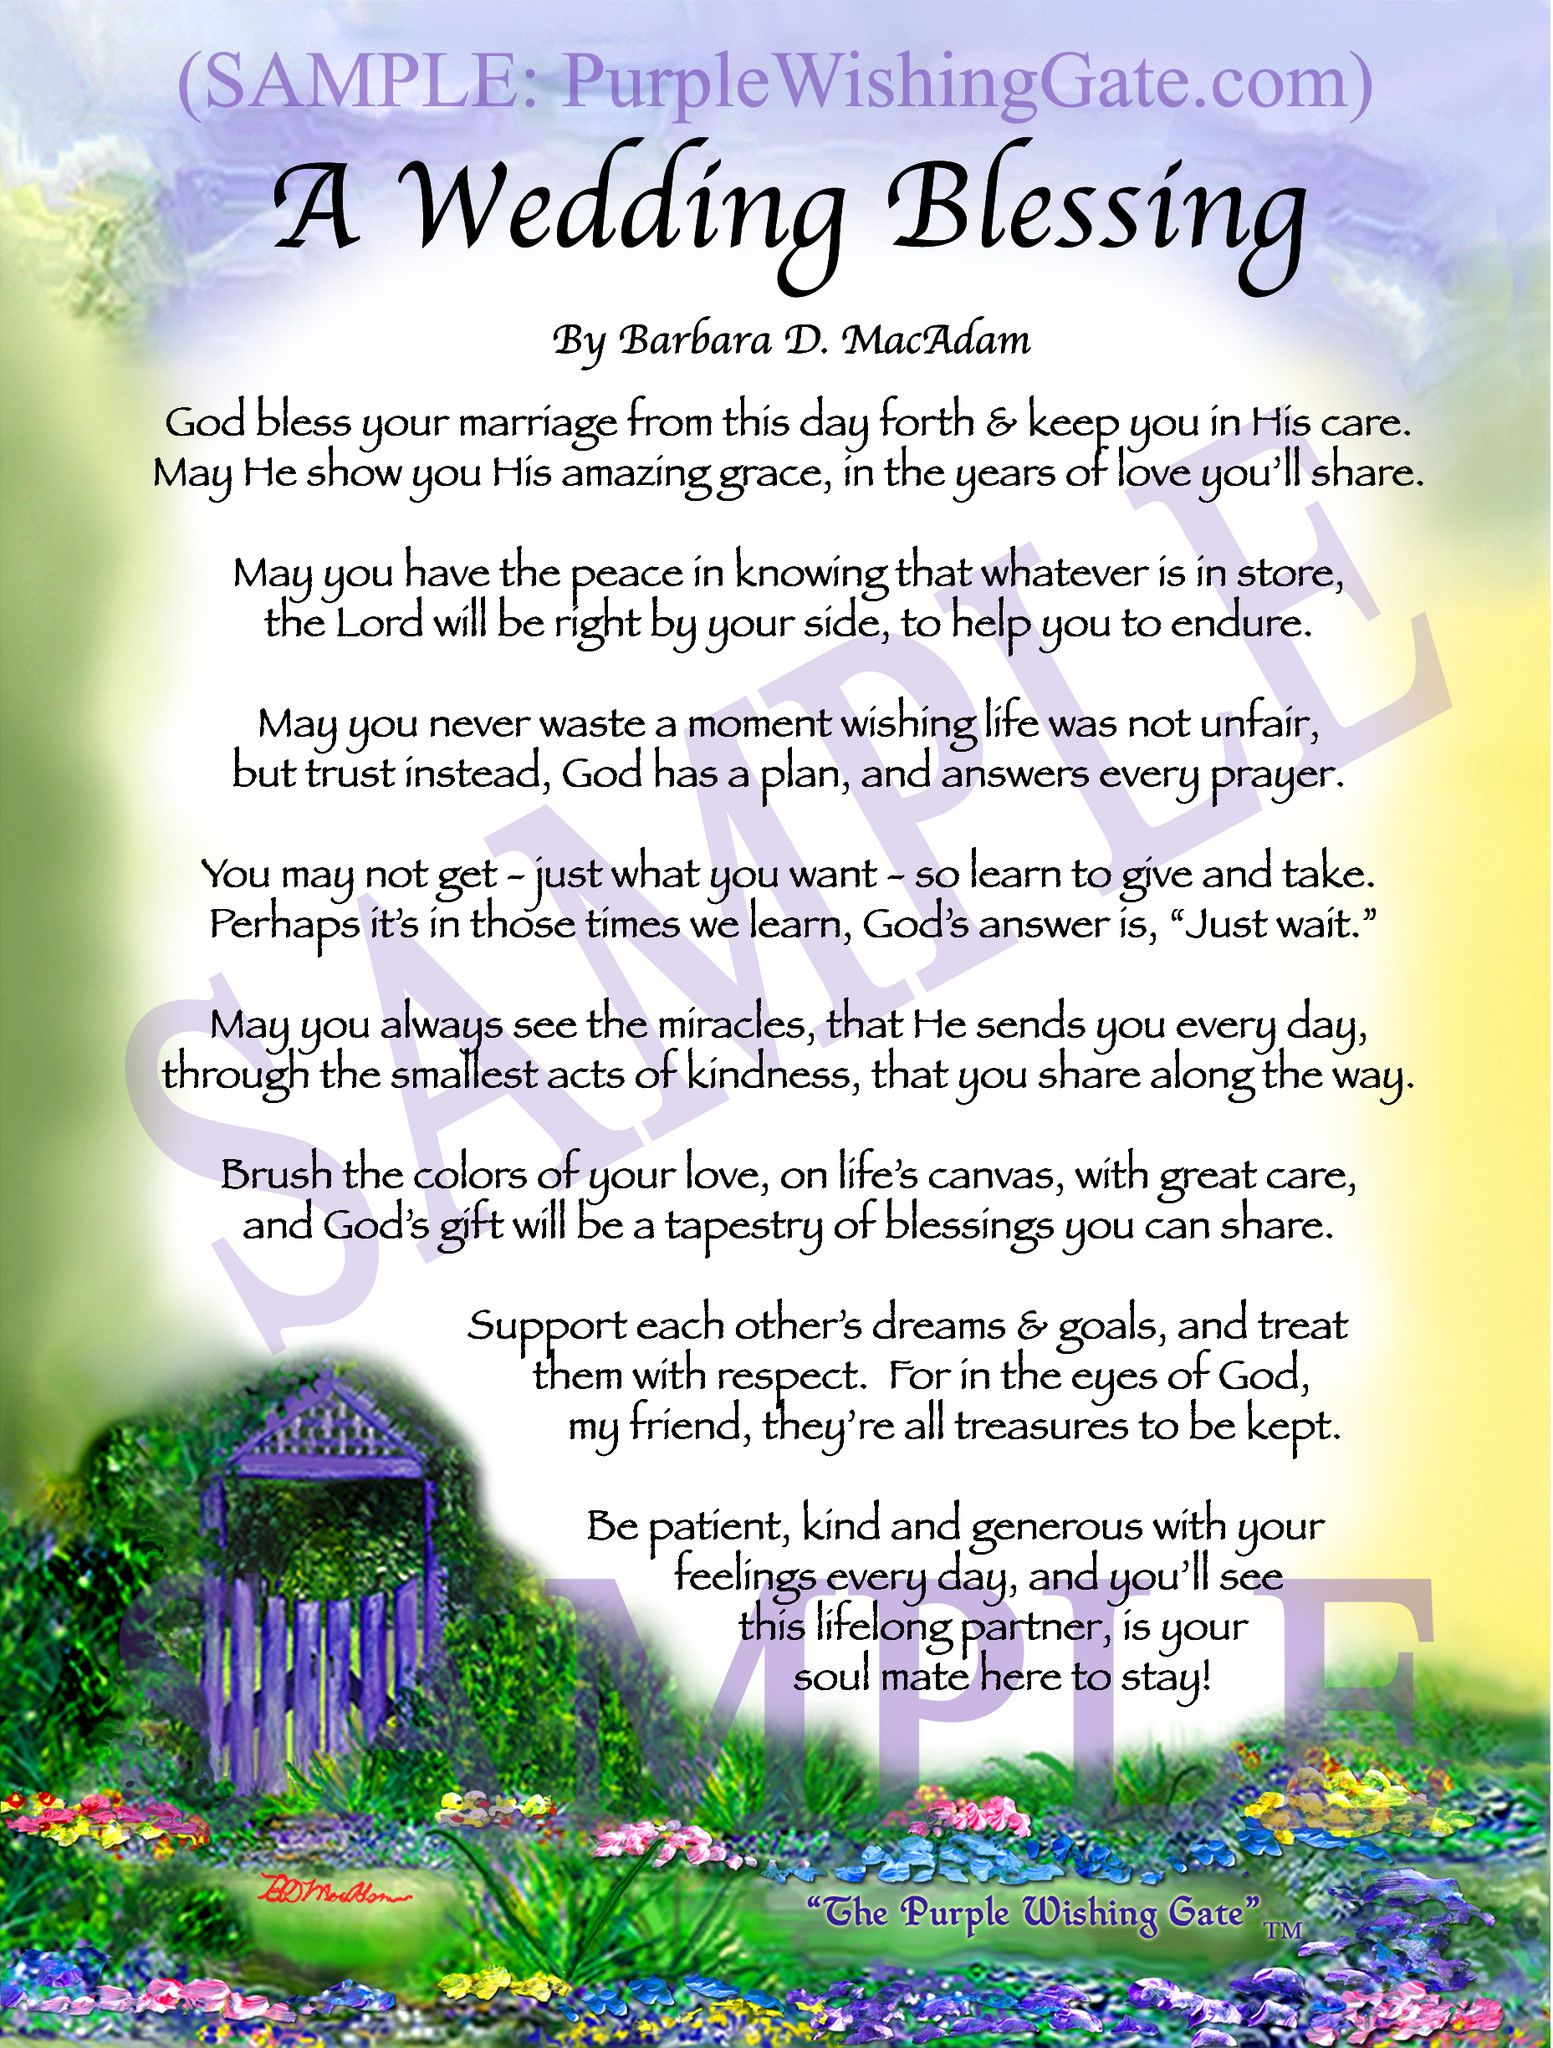 A Wedding Blessing Is A Beautiful Keepsake That Blesses